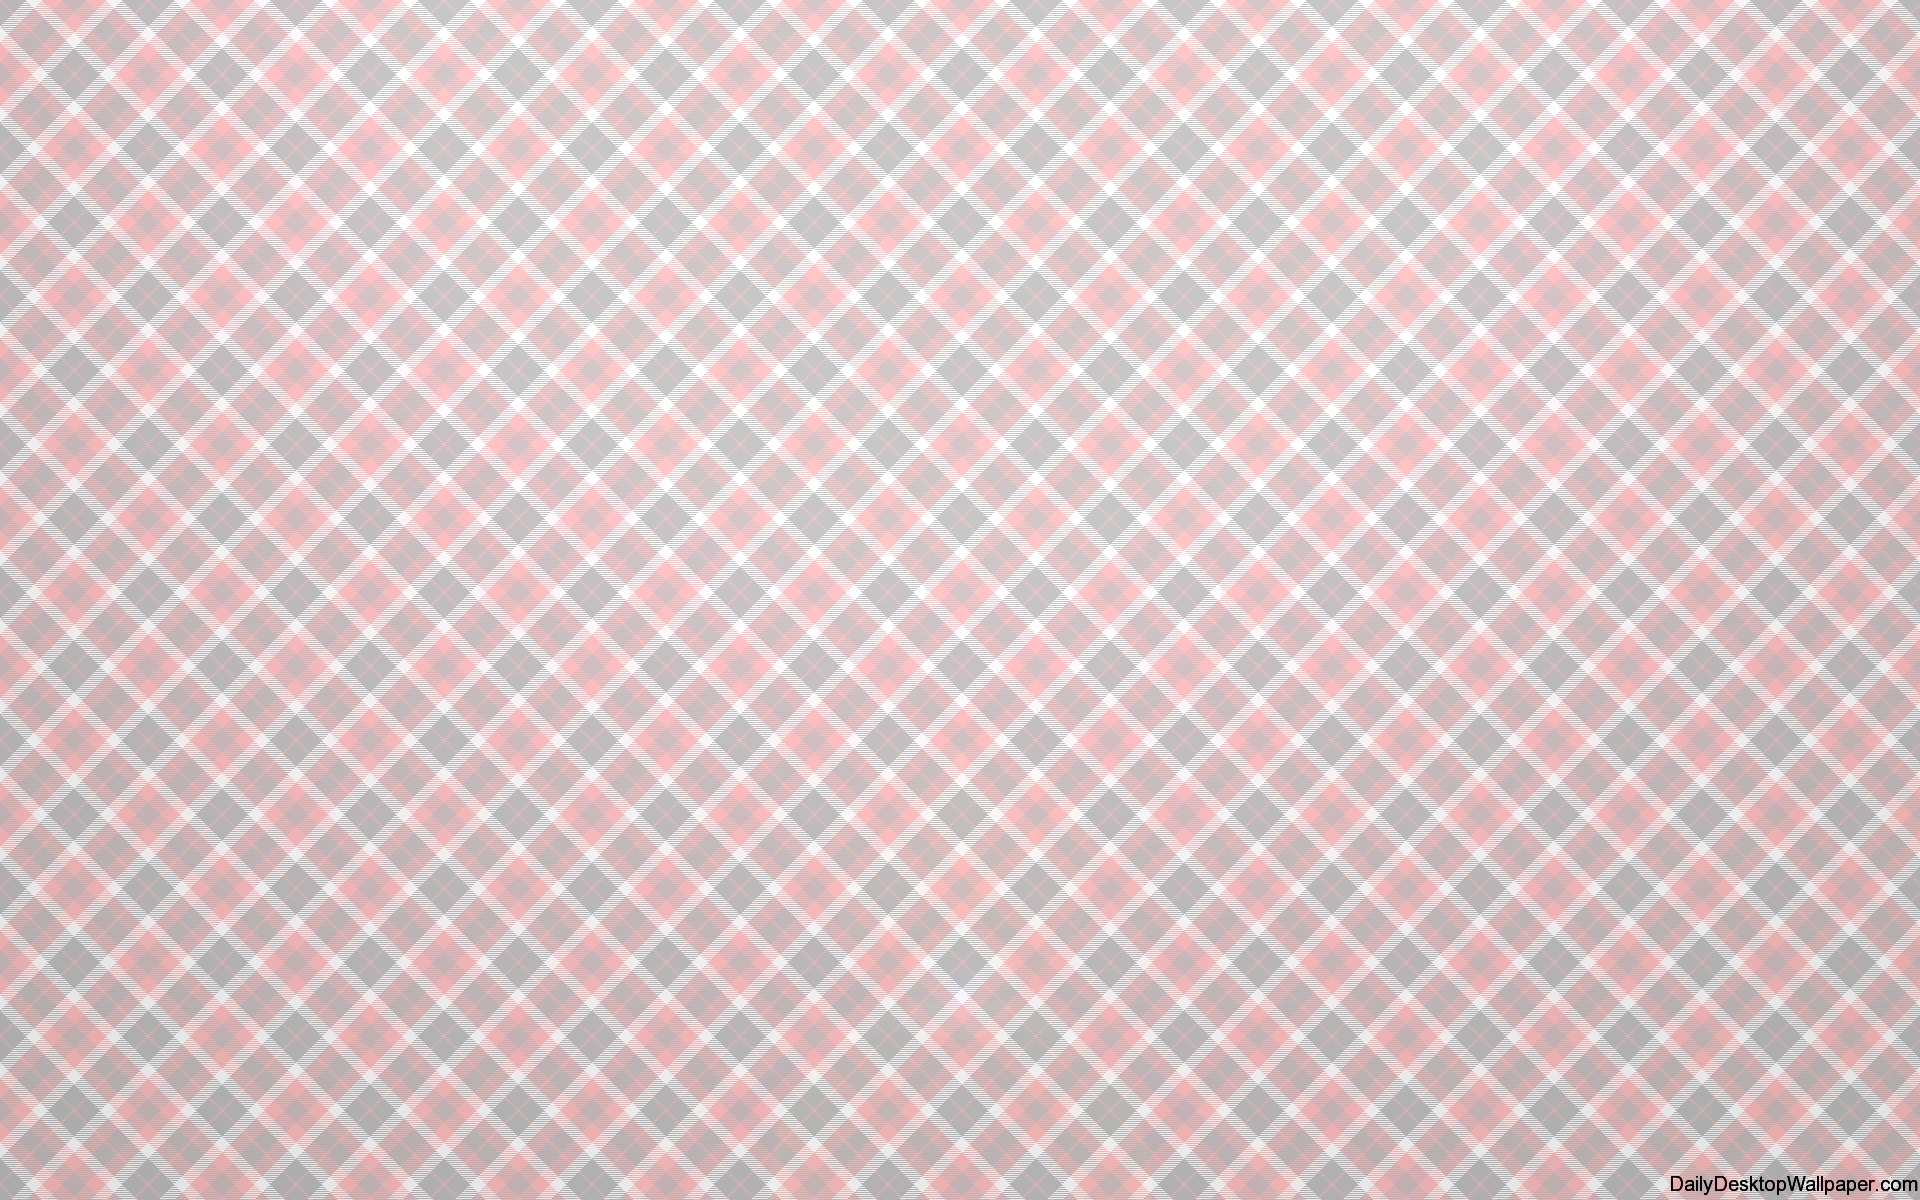 Chequered-Material